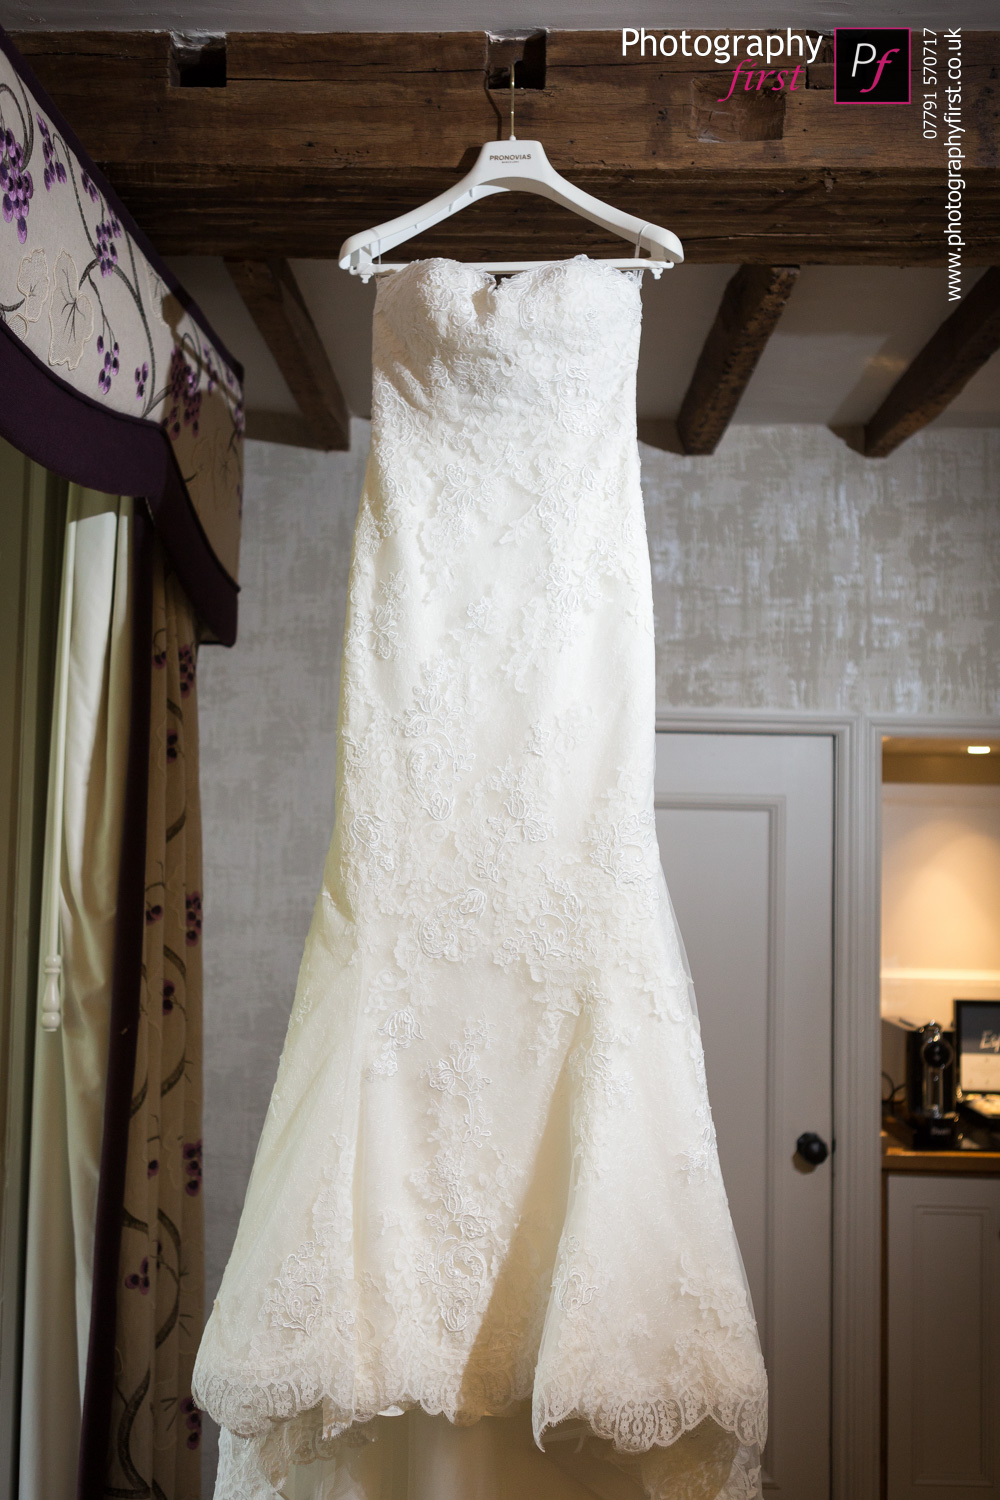 Wedding Ideas | Wedding Dresses | Photography First | South Wales ...